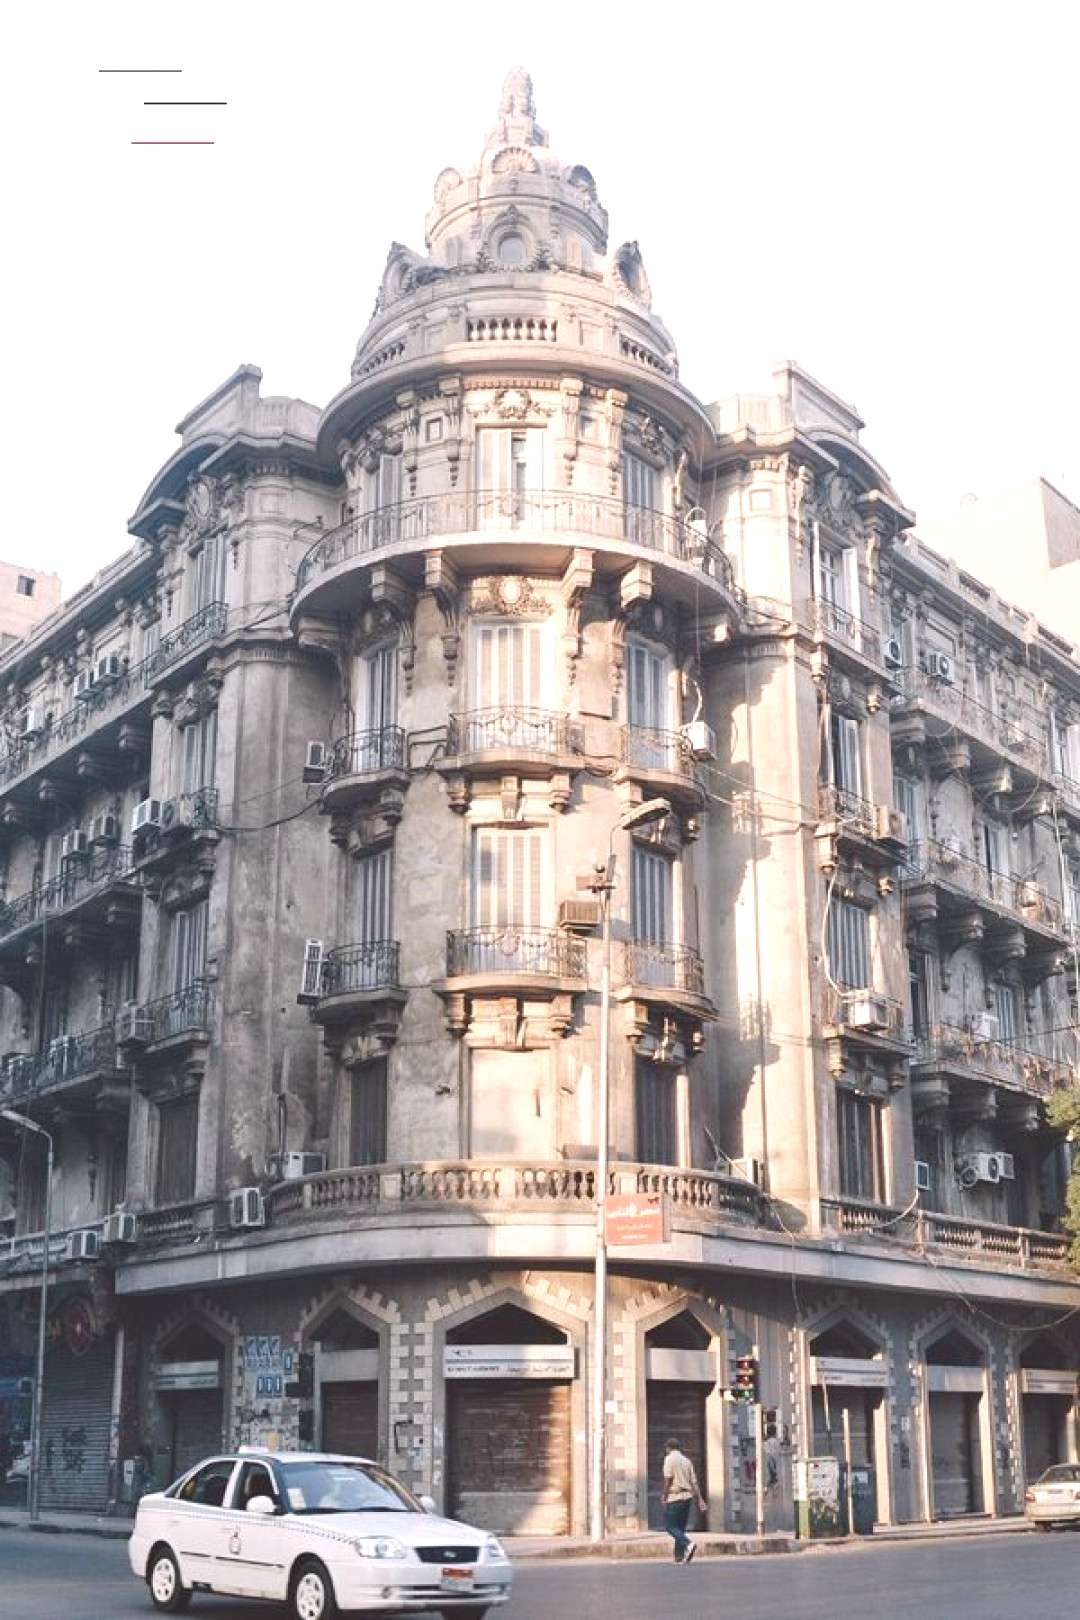 Downtown Cairo is full of hidden gems that are often bypassed by visitors. Here are my top picks fo